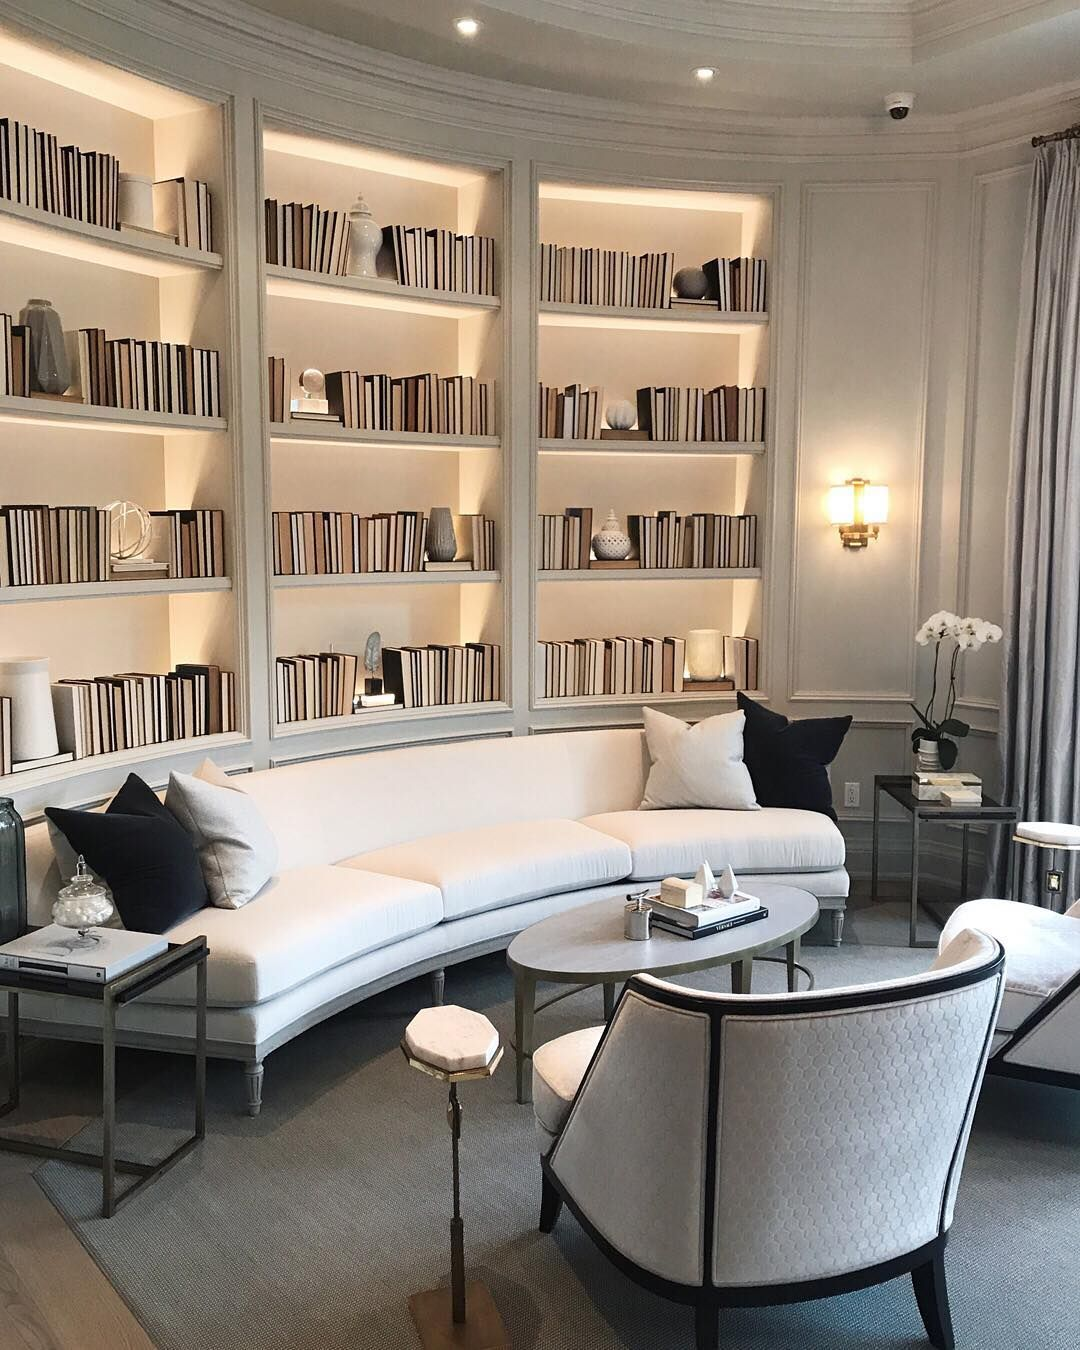 Interior Design Space: Beautiful Library Space. Home Interior. Bookshelves